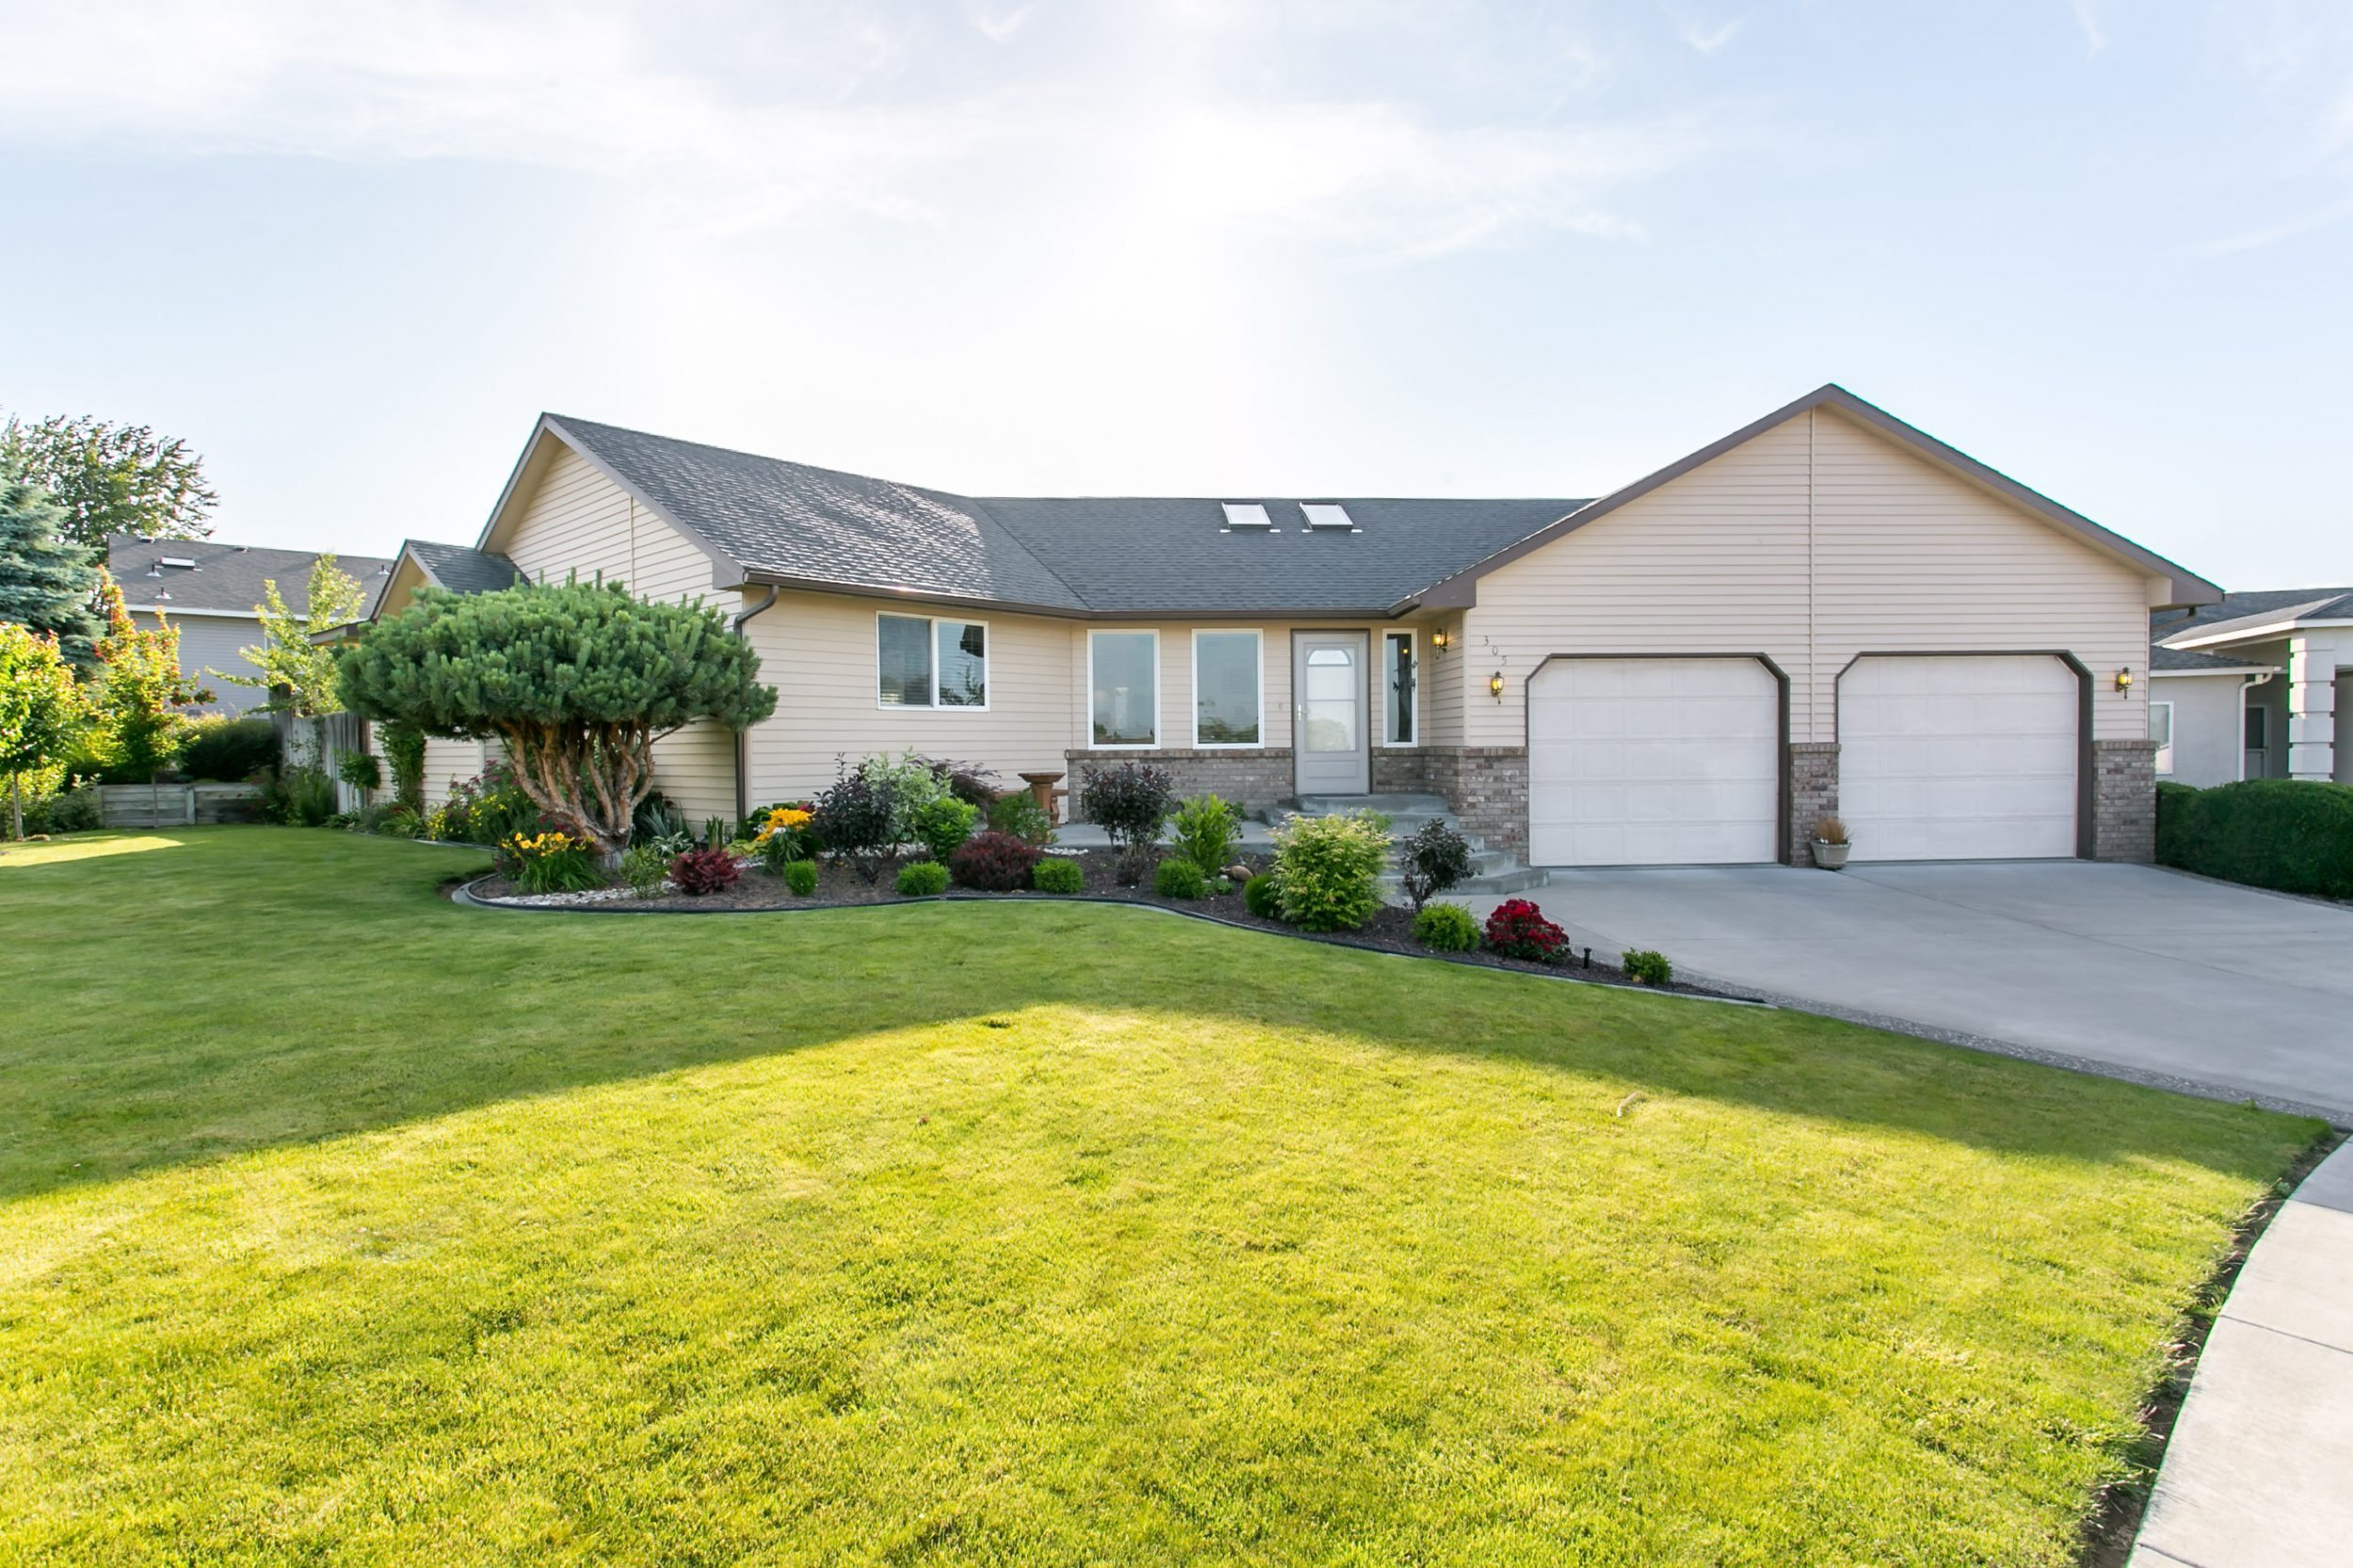 Beautifully landscaped canyon lakes rambler century 21 for Beautiful rambler homes